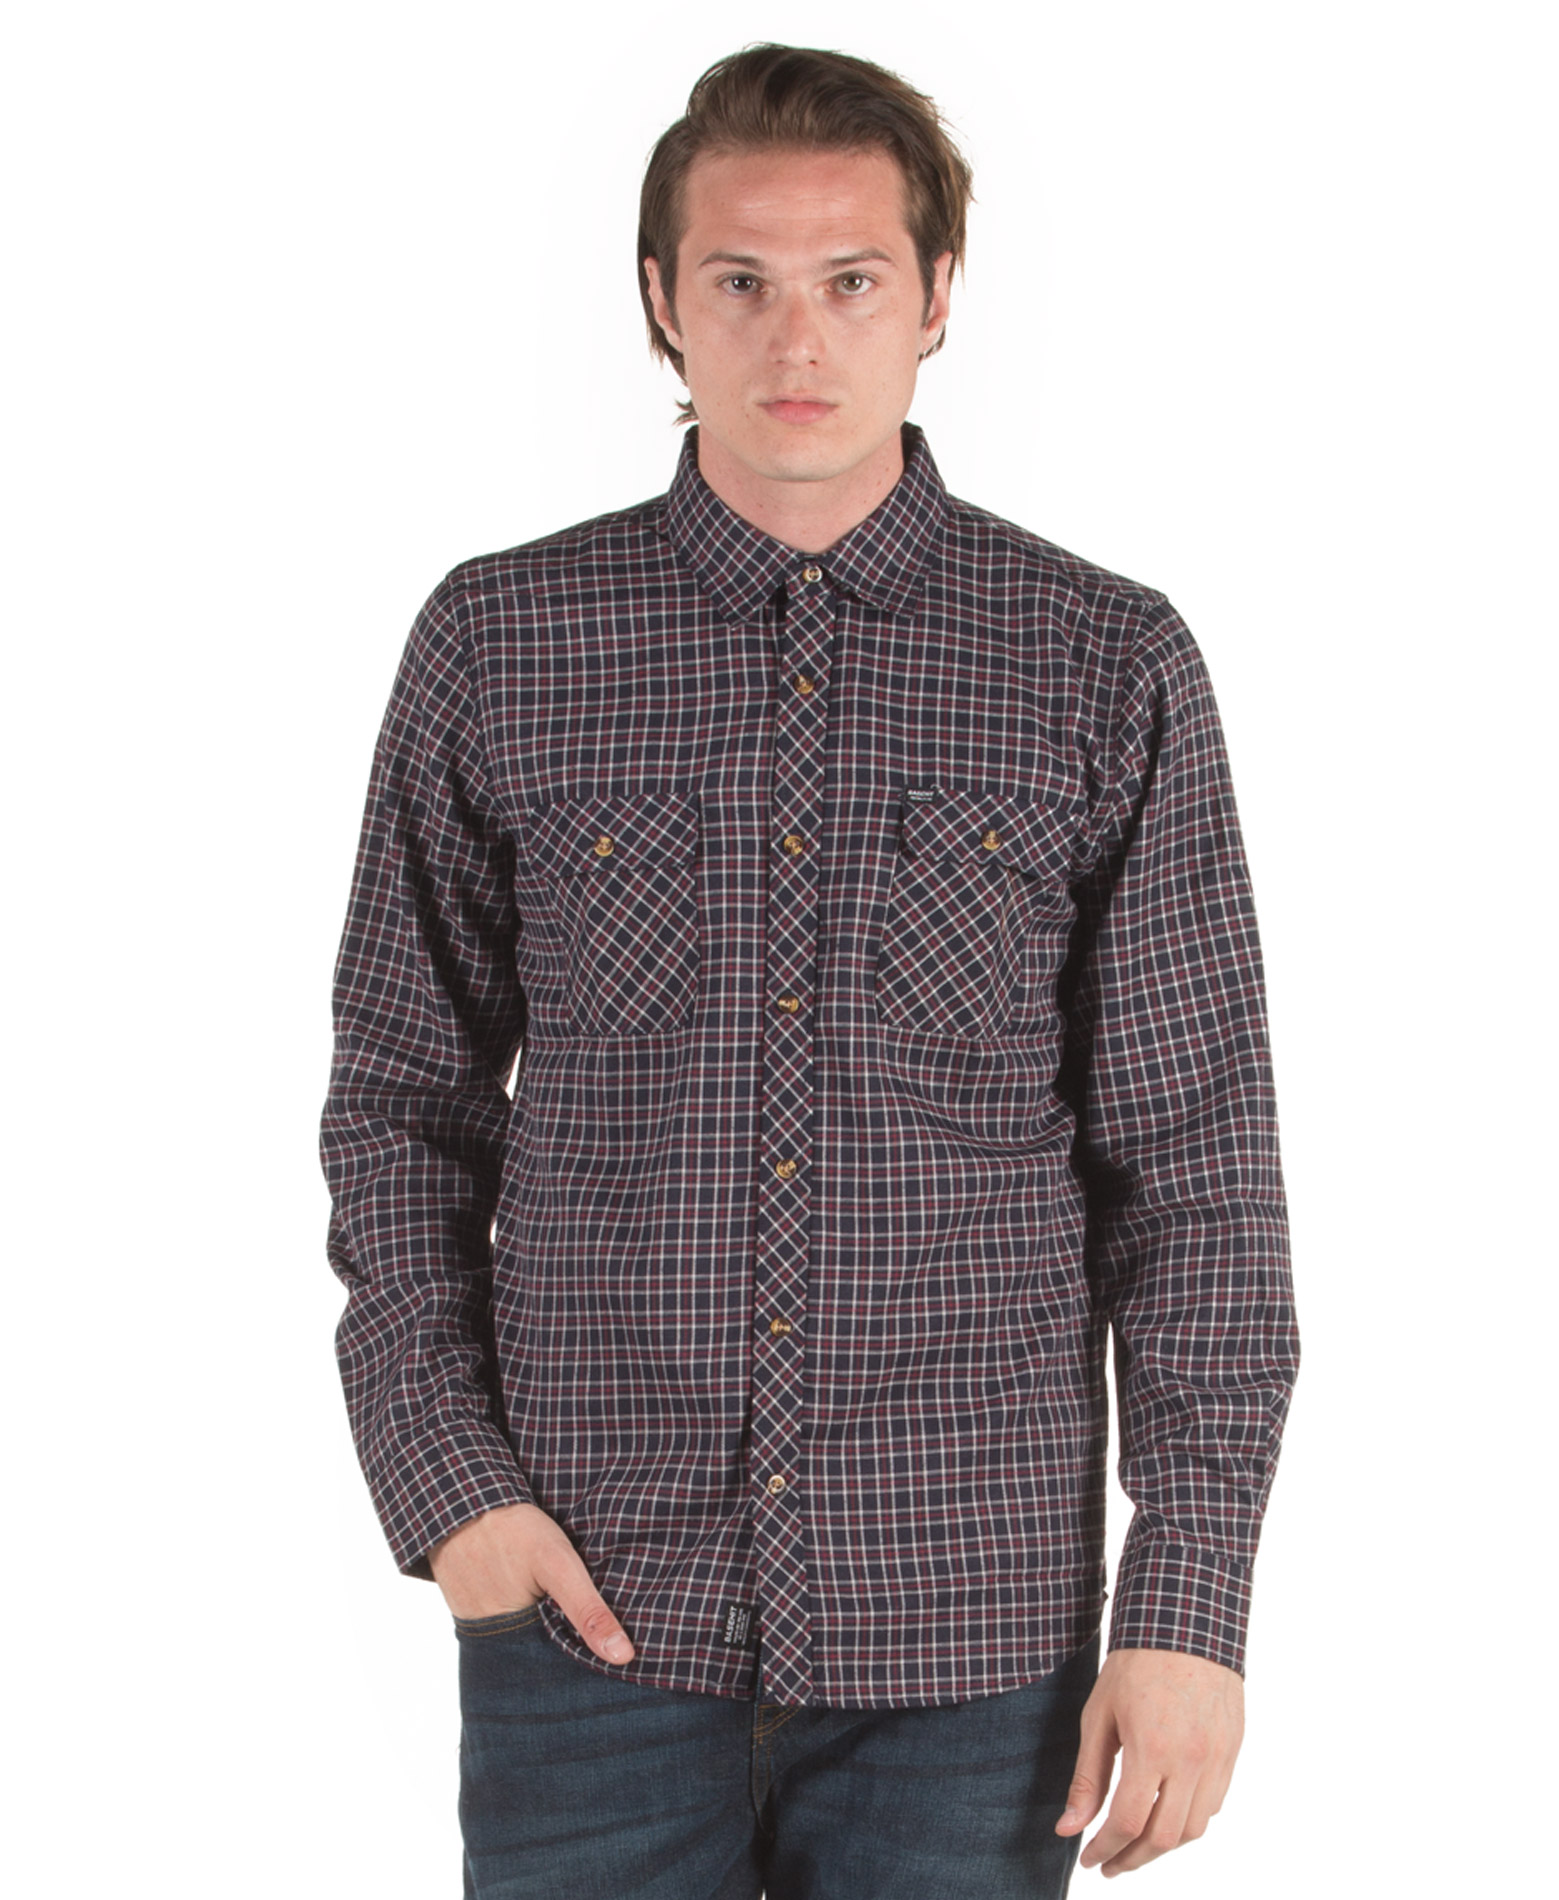 BASEHIT CHECKED POCKET SHIRTS 182.BM60.82-BH5 NAVY/RED Μπλέ